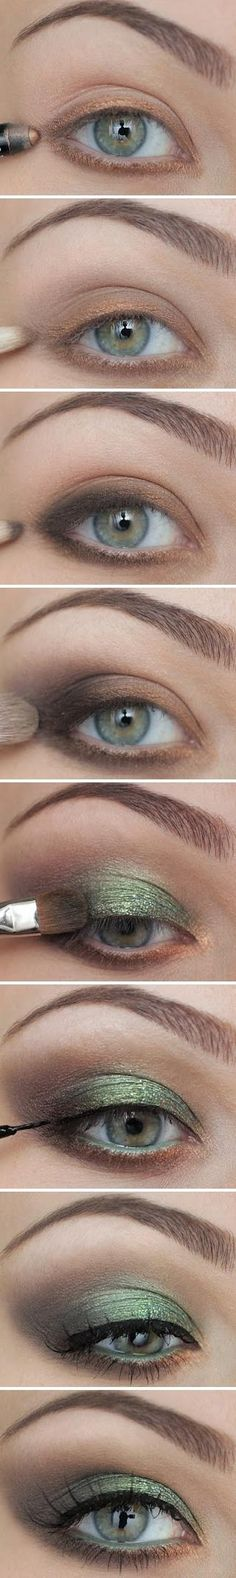 Gorgeous Eye Makeup Tutorials For Beginners of 2019 Green eye make up ( I think with a different eye shadow shade this would work for my blue eyes too!)Green eye make up ( I think with a different eye shadow shade this would work for my blue eyes too! Beauty Make-up, Beauty Secrets, Beauty Hacks, Beauty Tips, Beauty Room, Beauty Quotes, Beauty Ideas, Green Smokey Eye, Smoky Eye